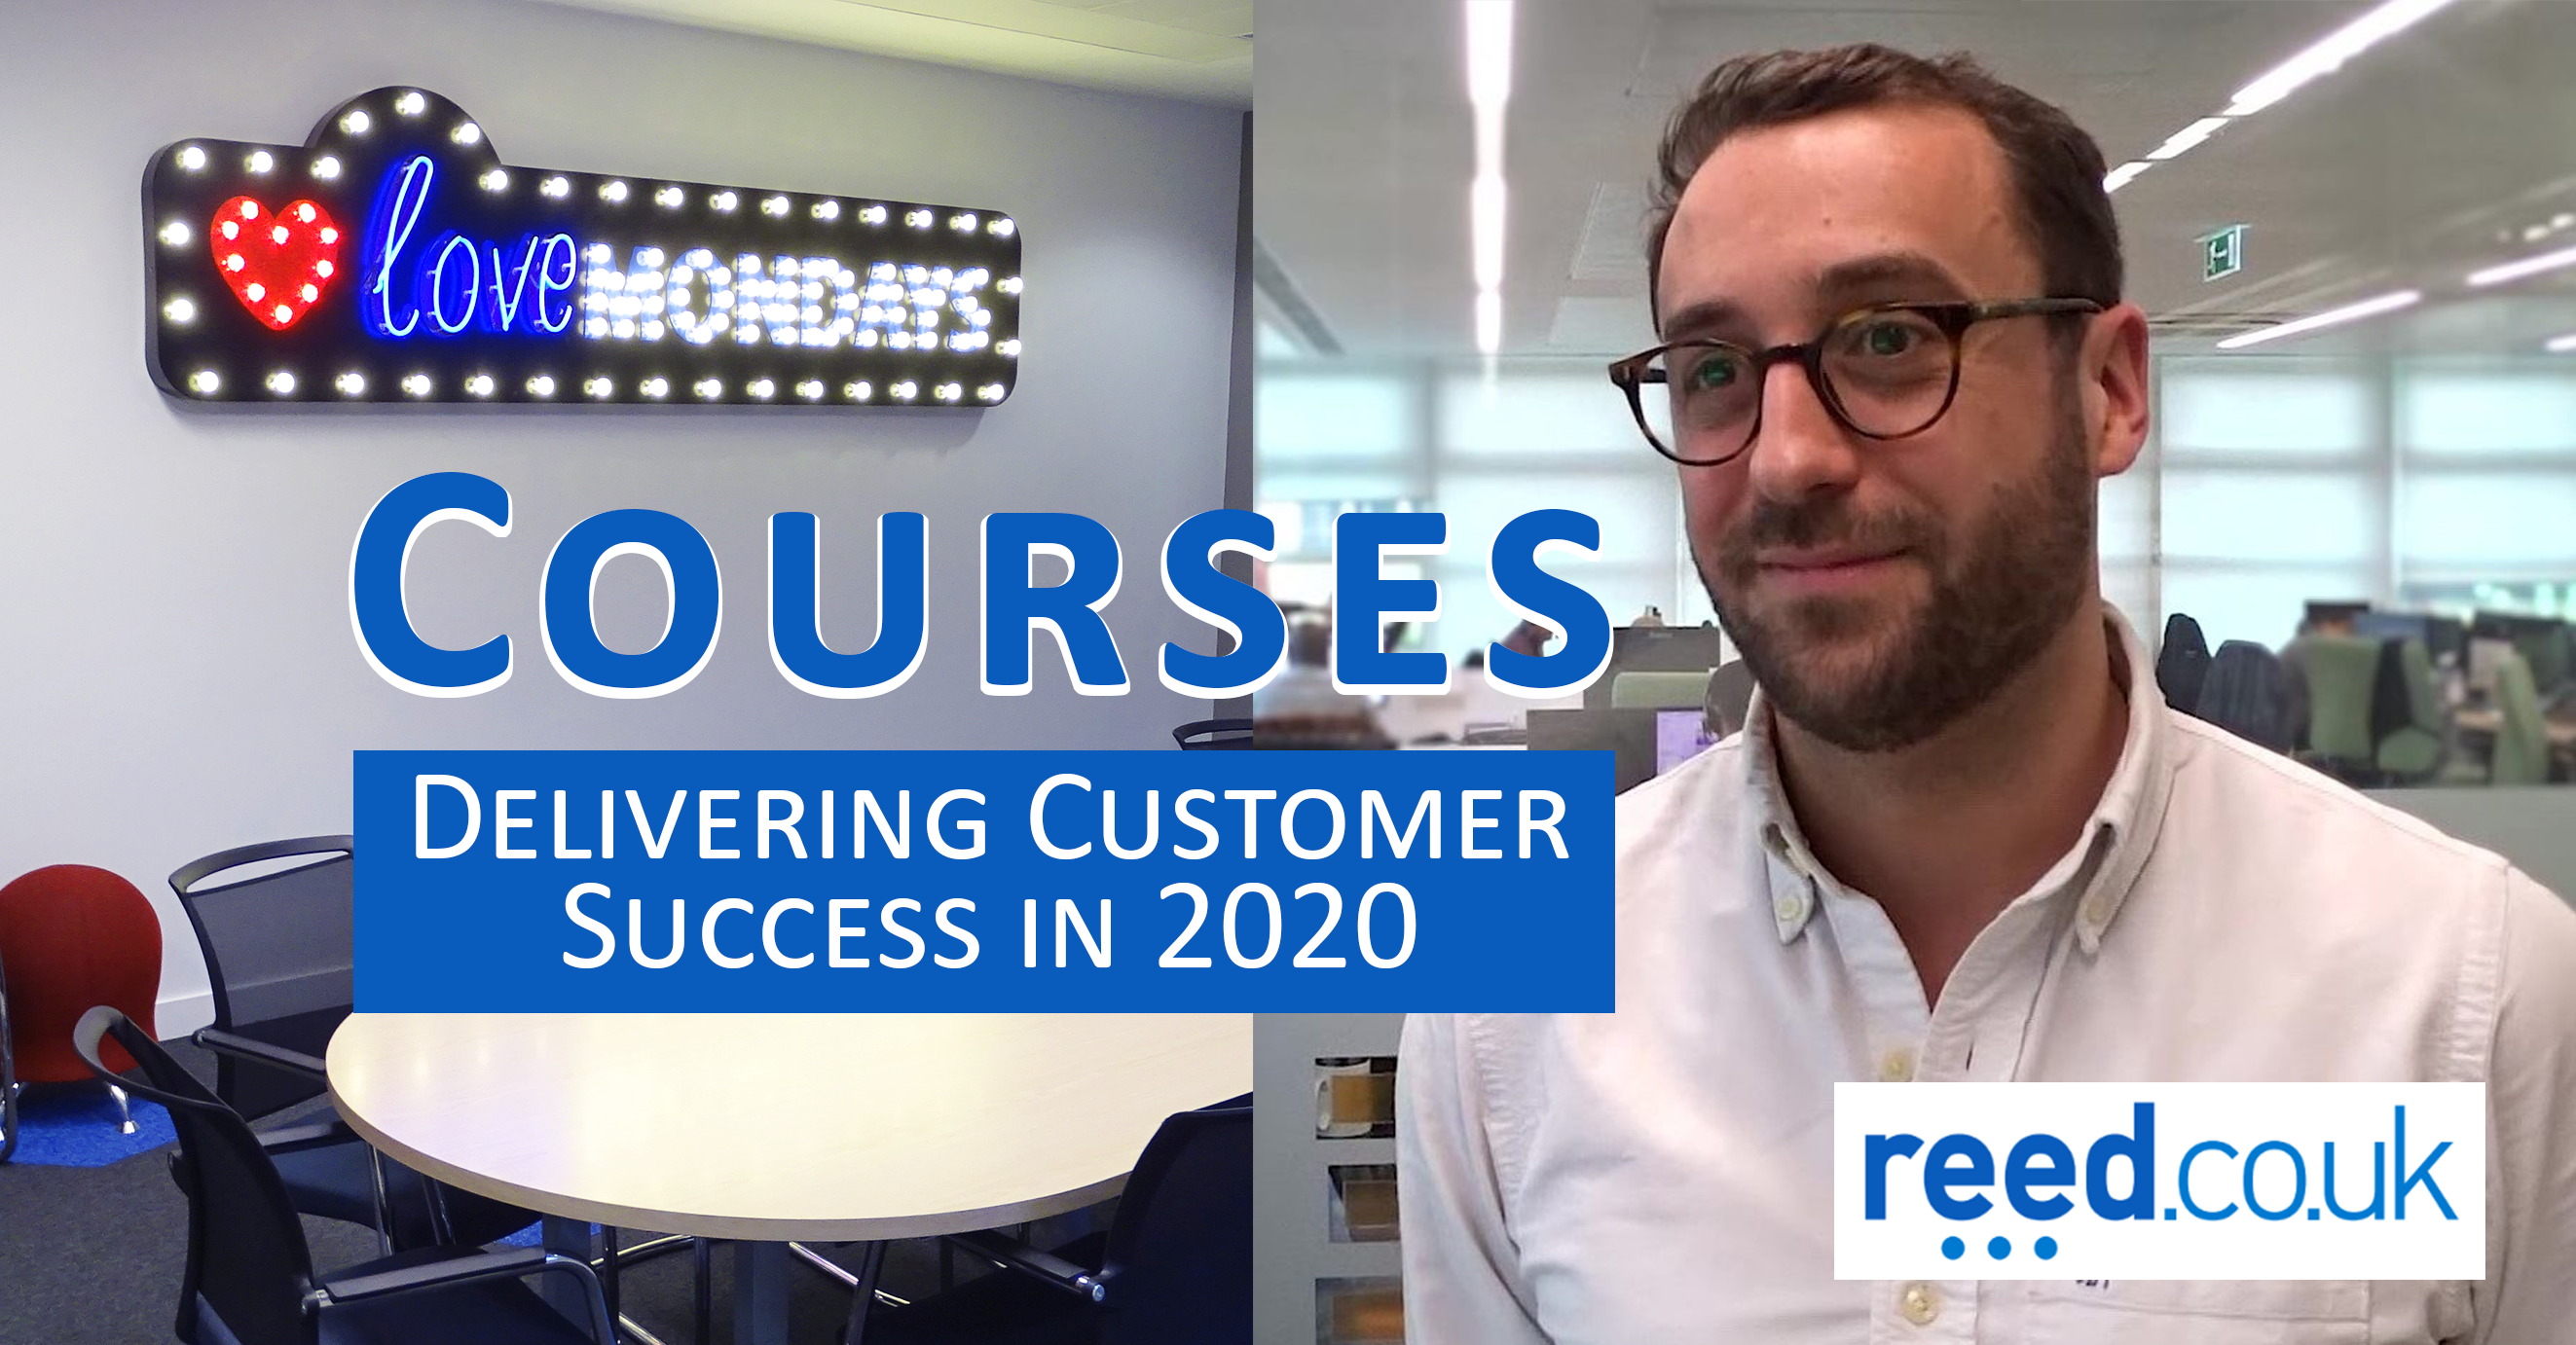 Reed Co Uk Courses Delivering Customer Success In 2020